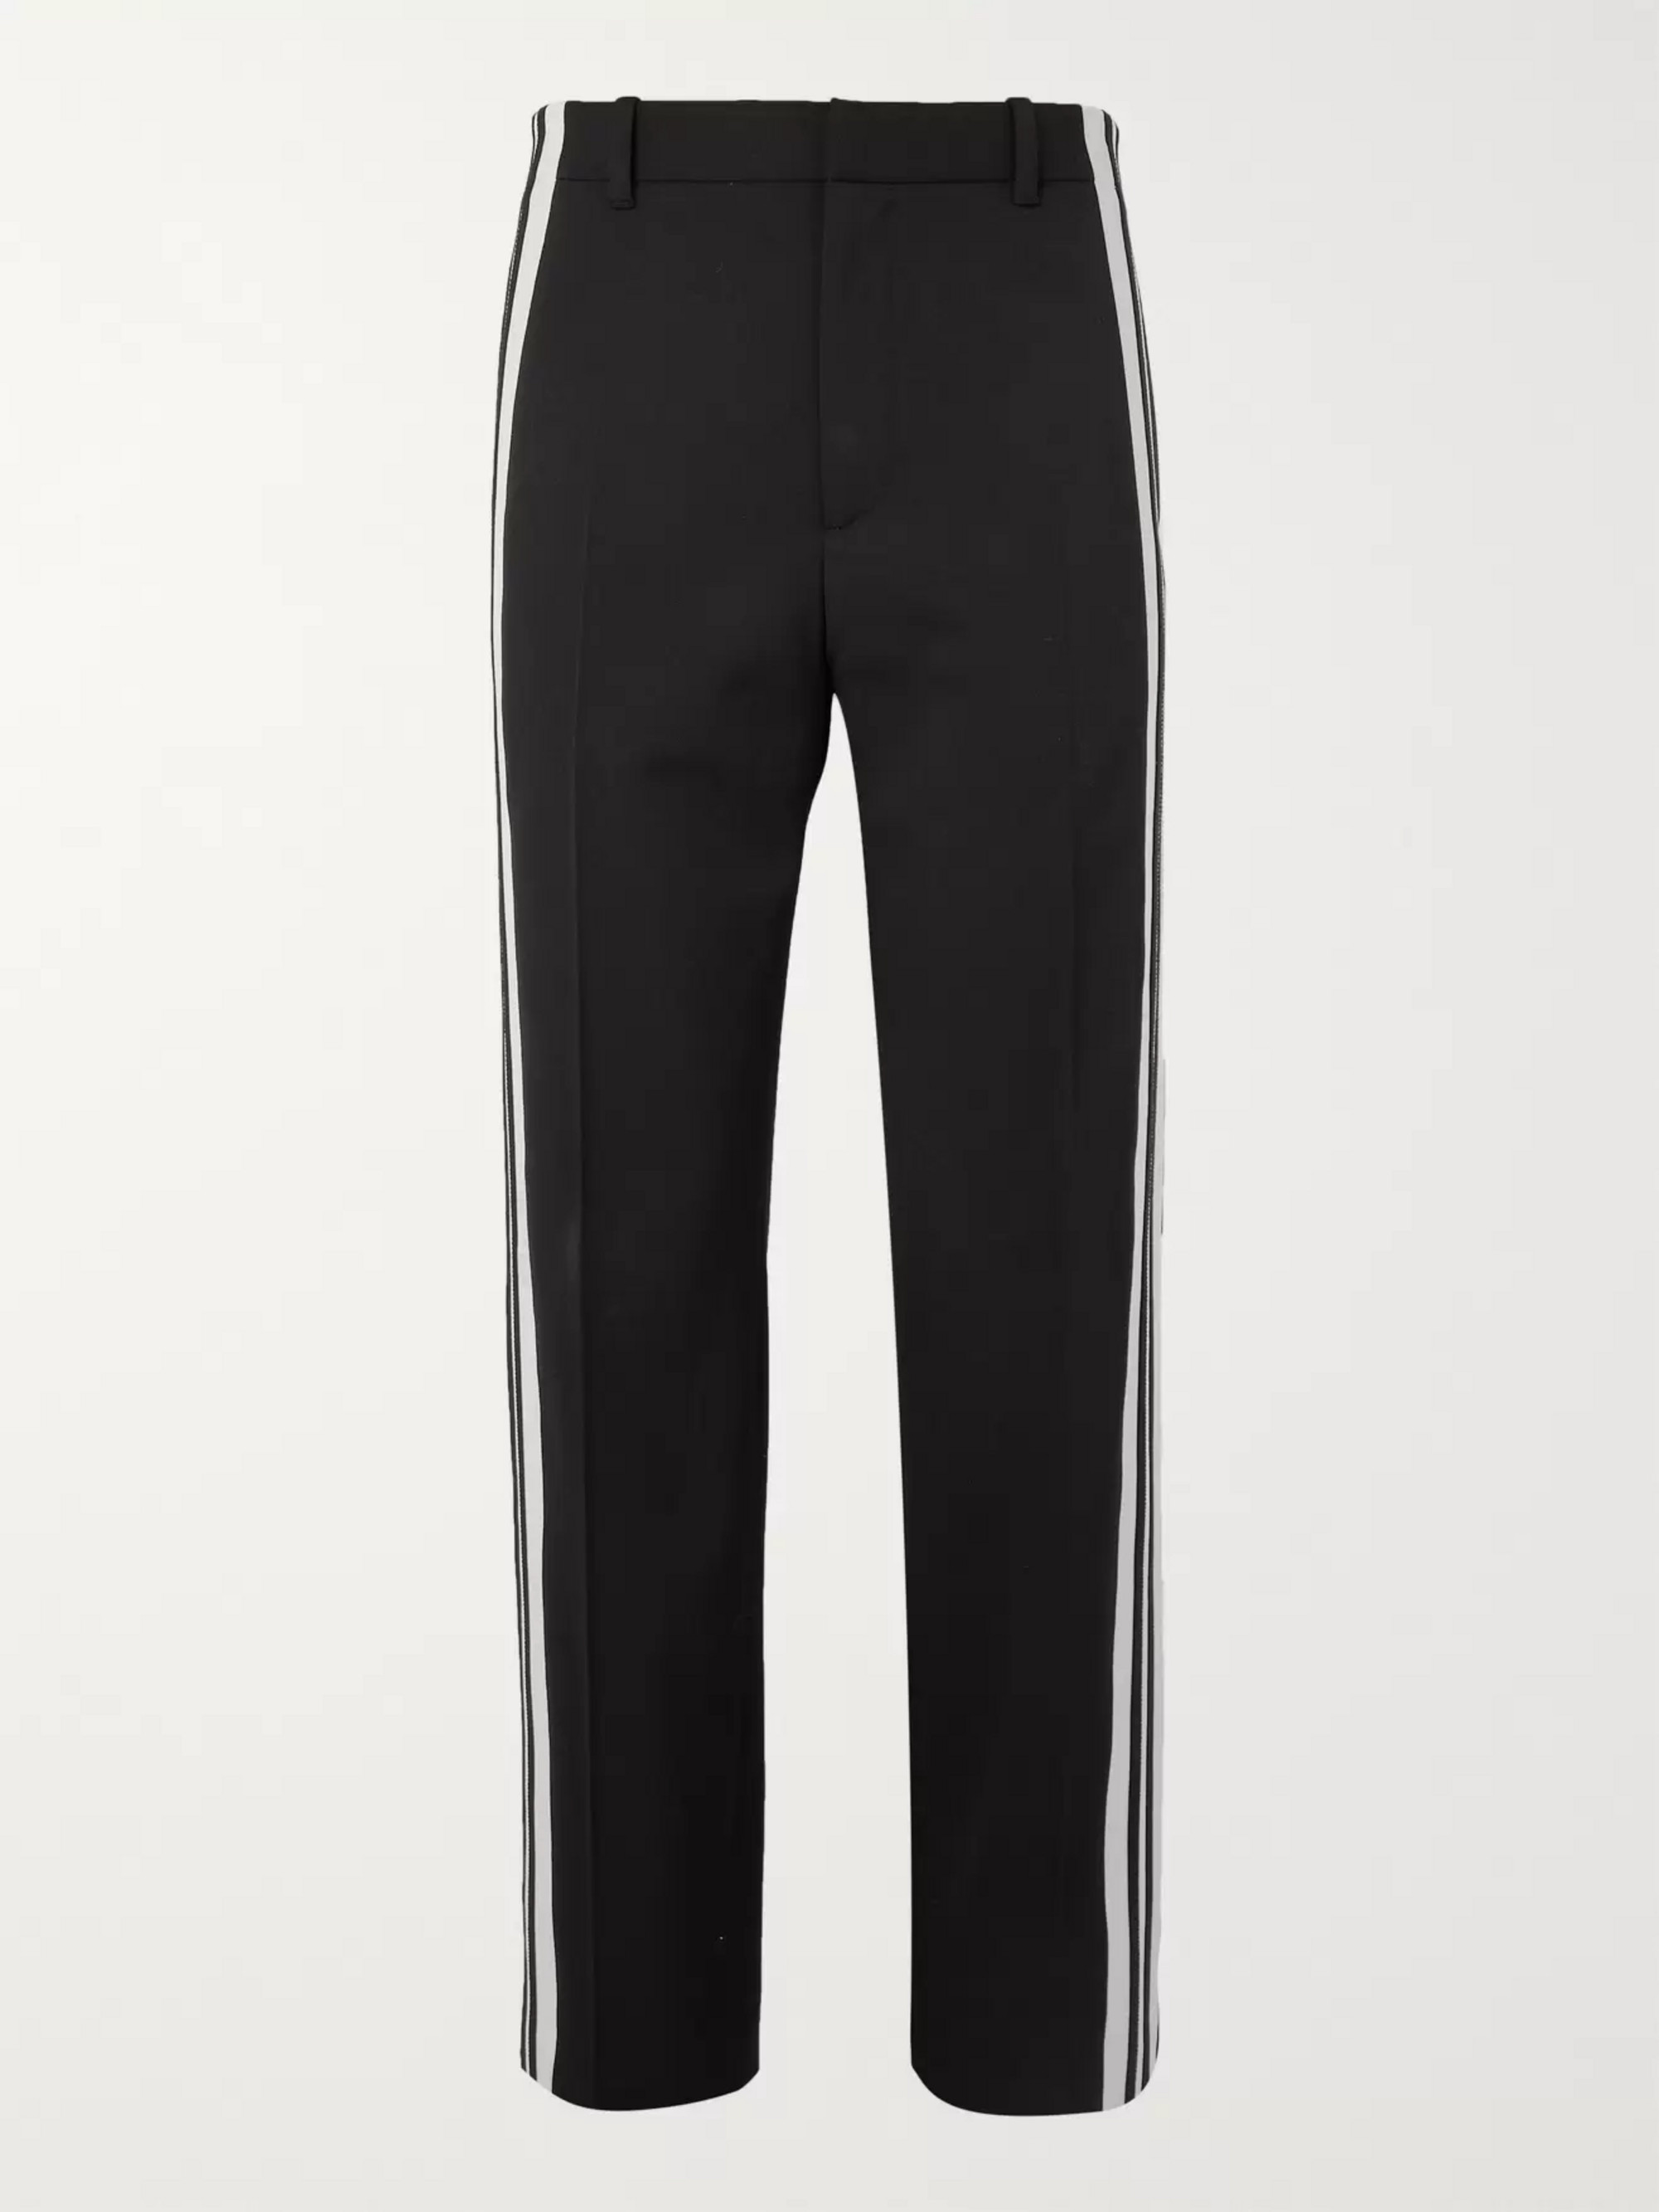 Balenciaga Striped Twill Trousers